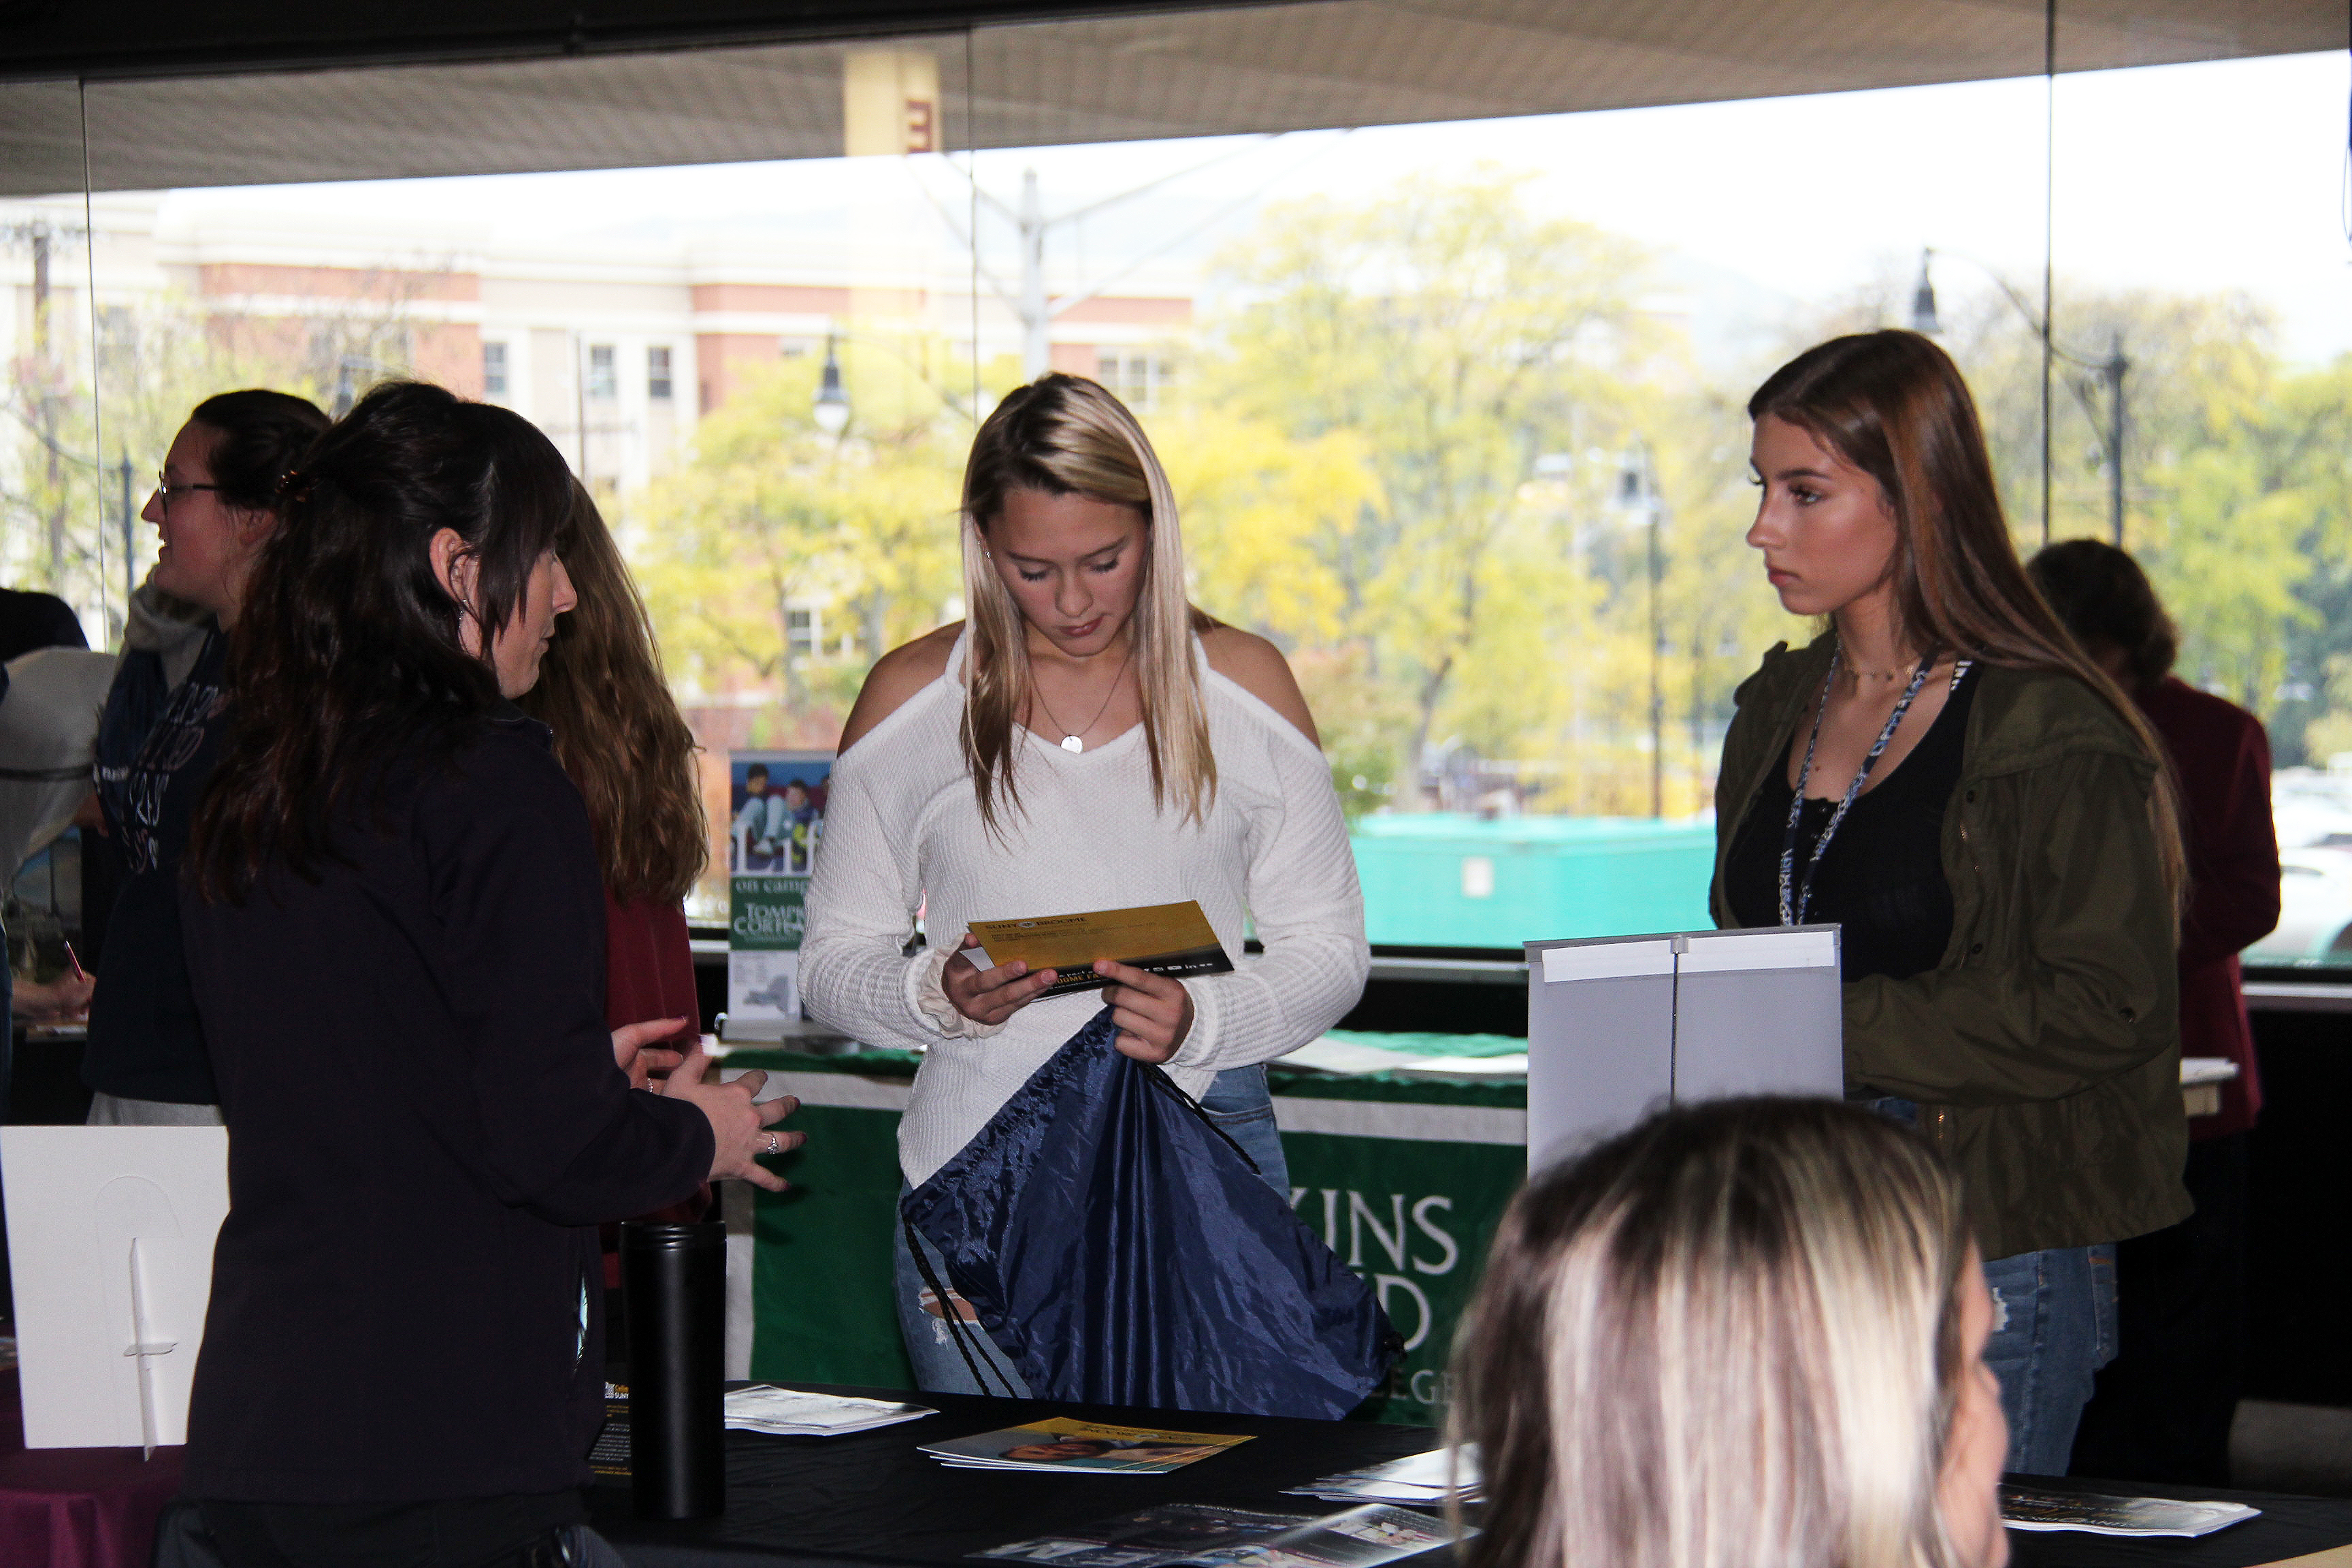 students at college day event